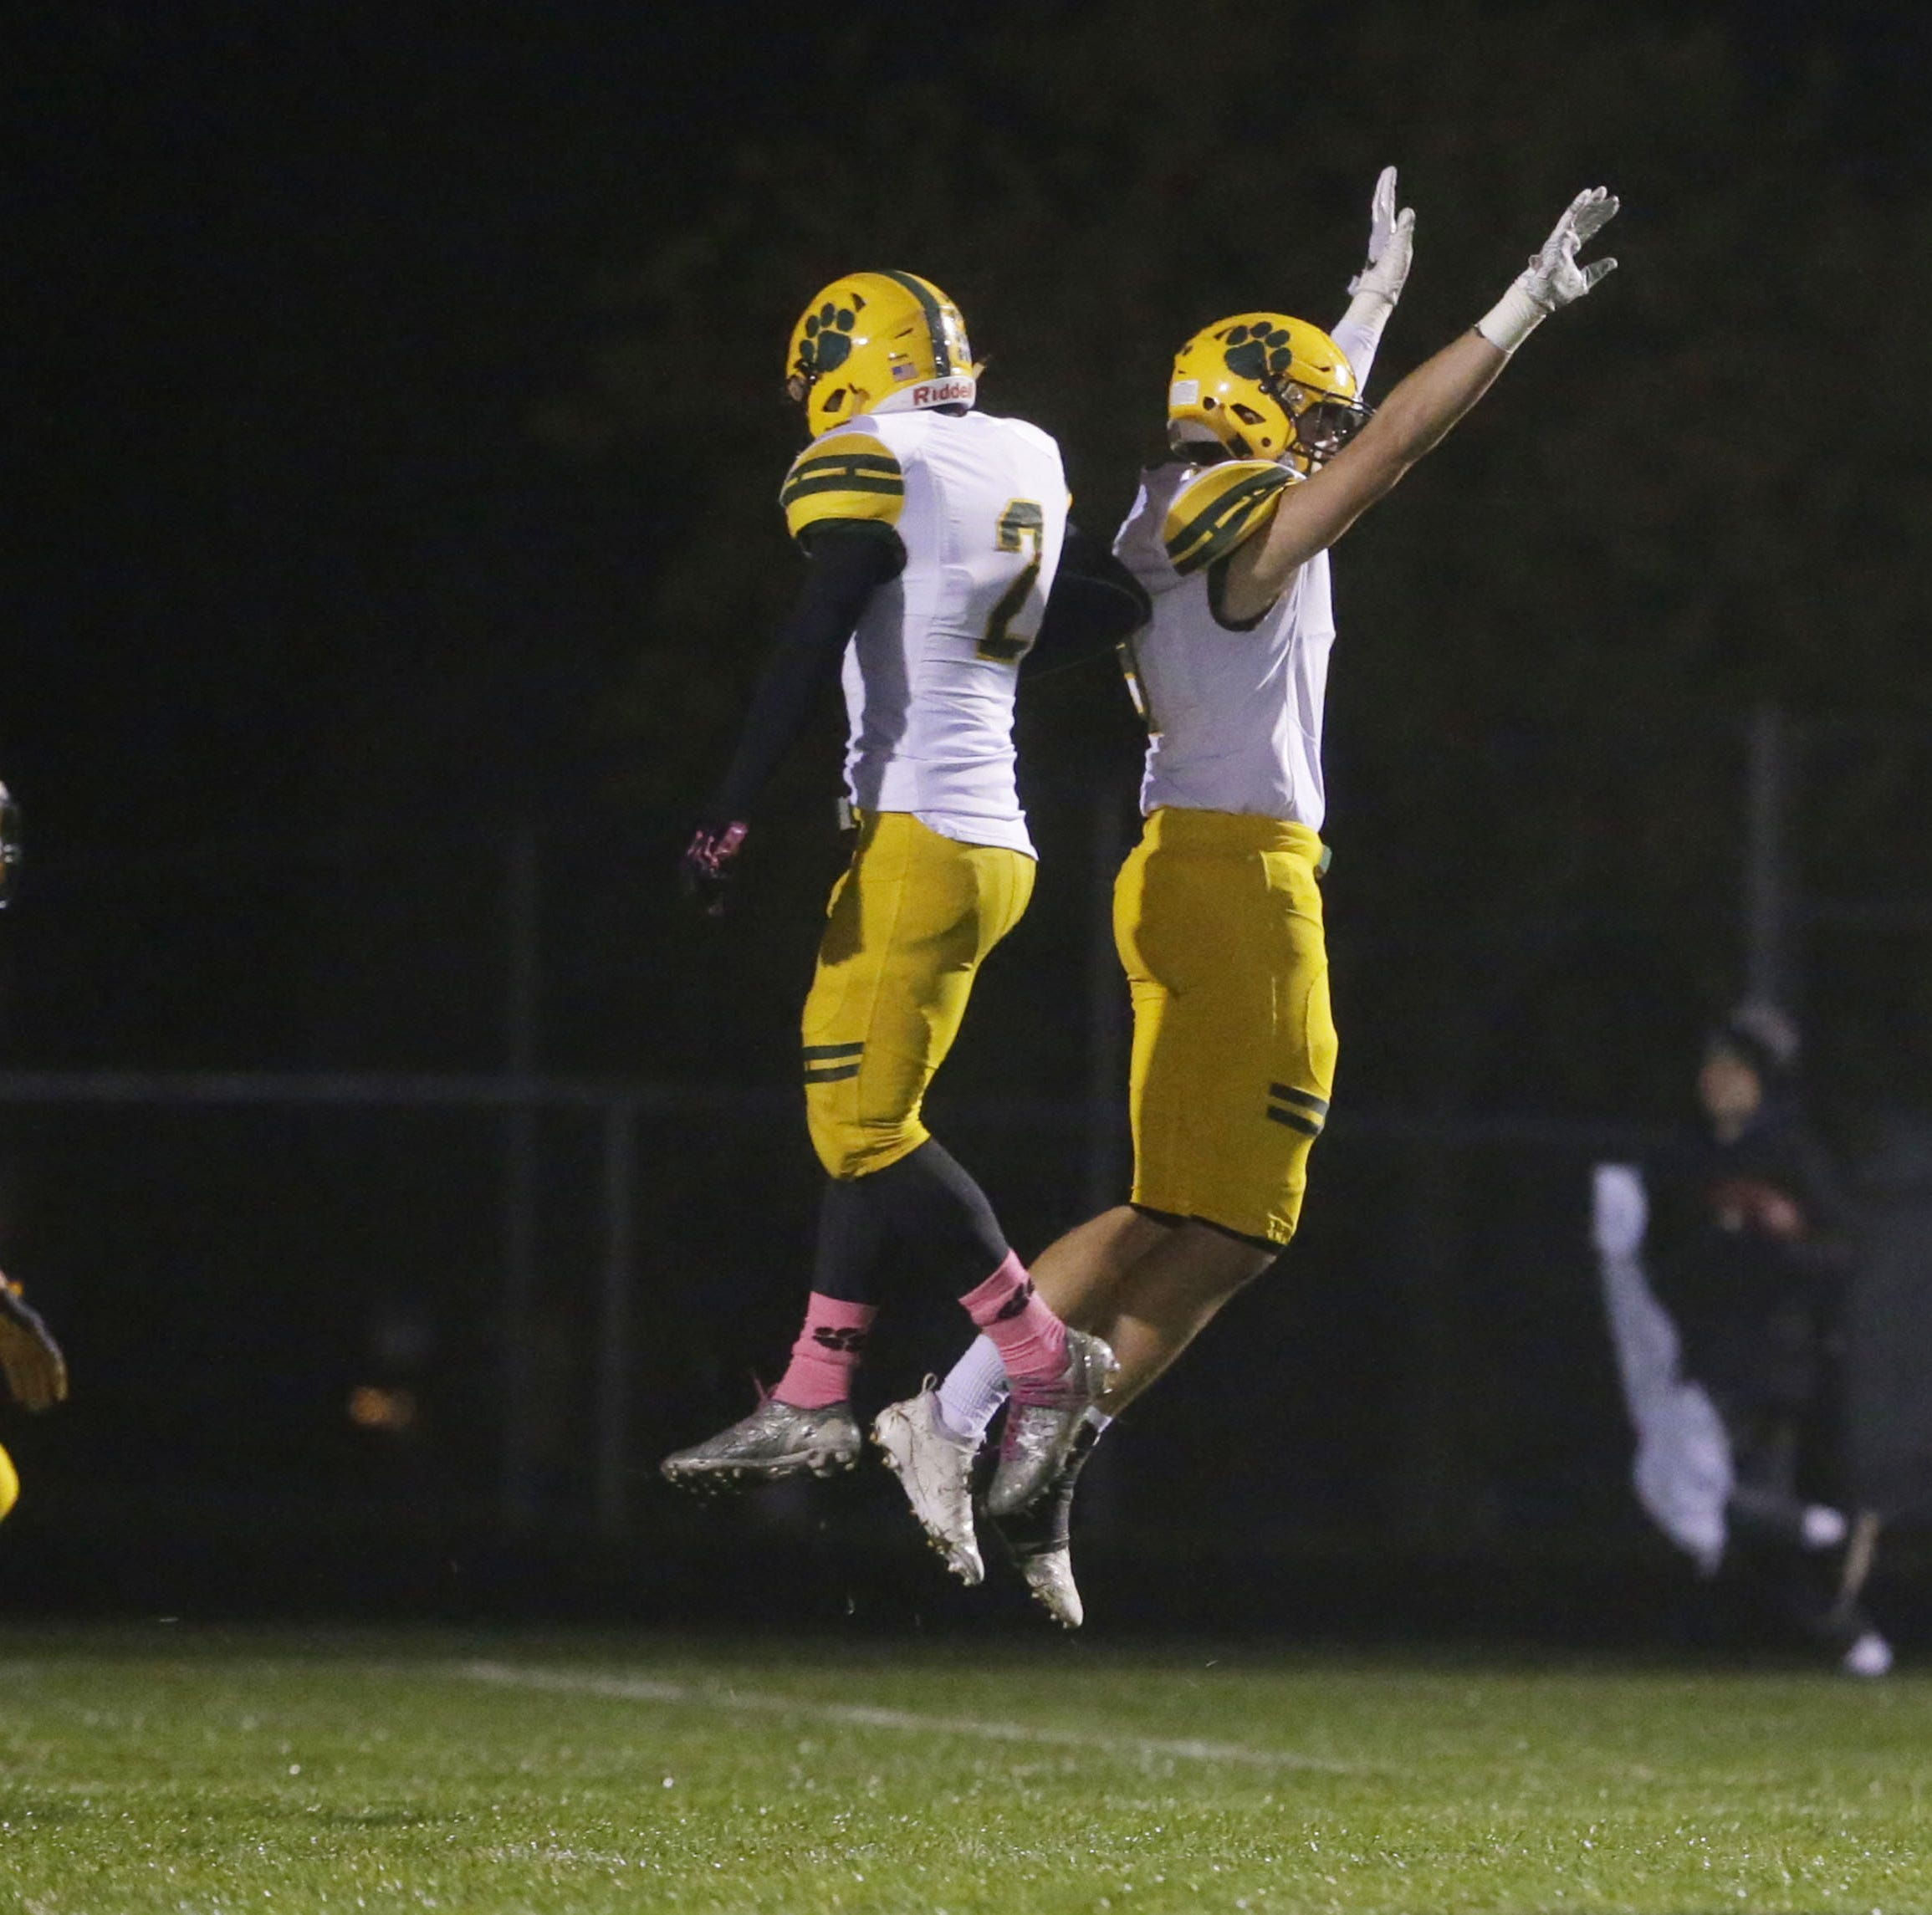 High school football: Week 9 takeaways from Green Bay area